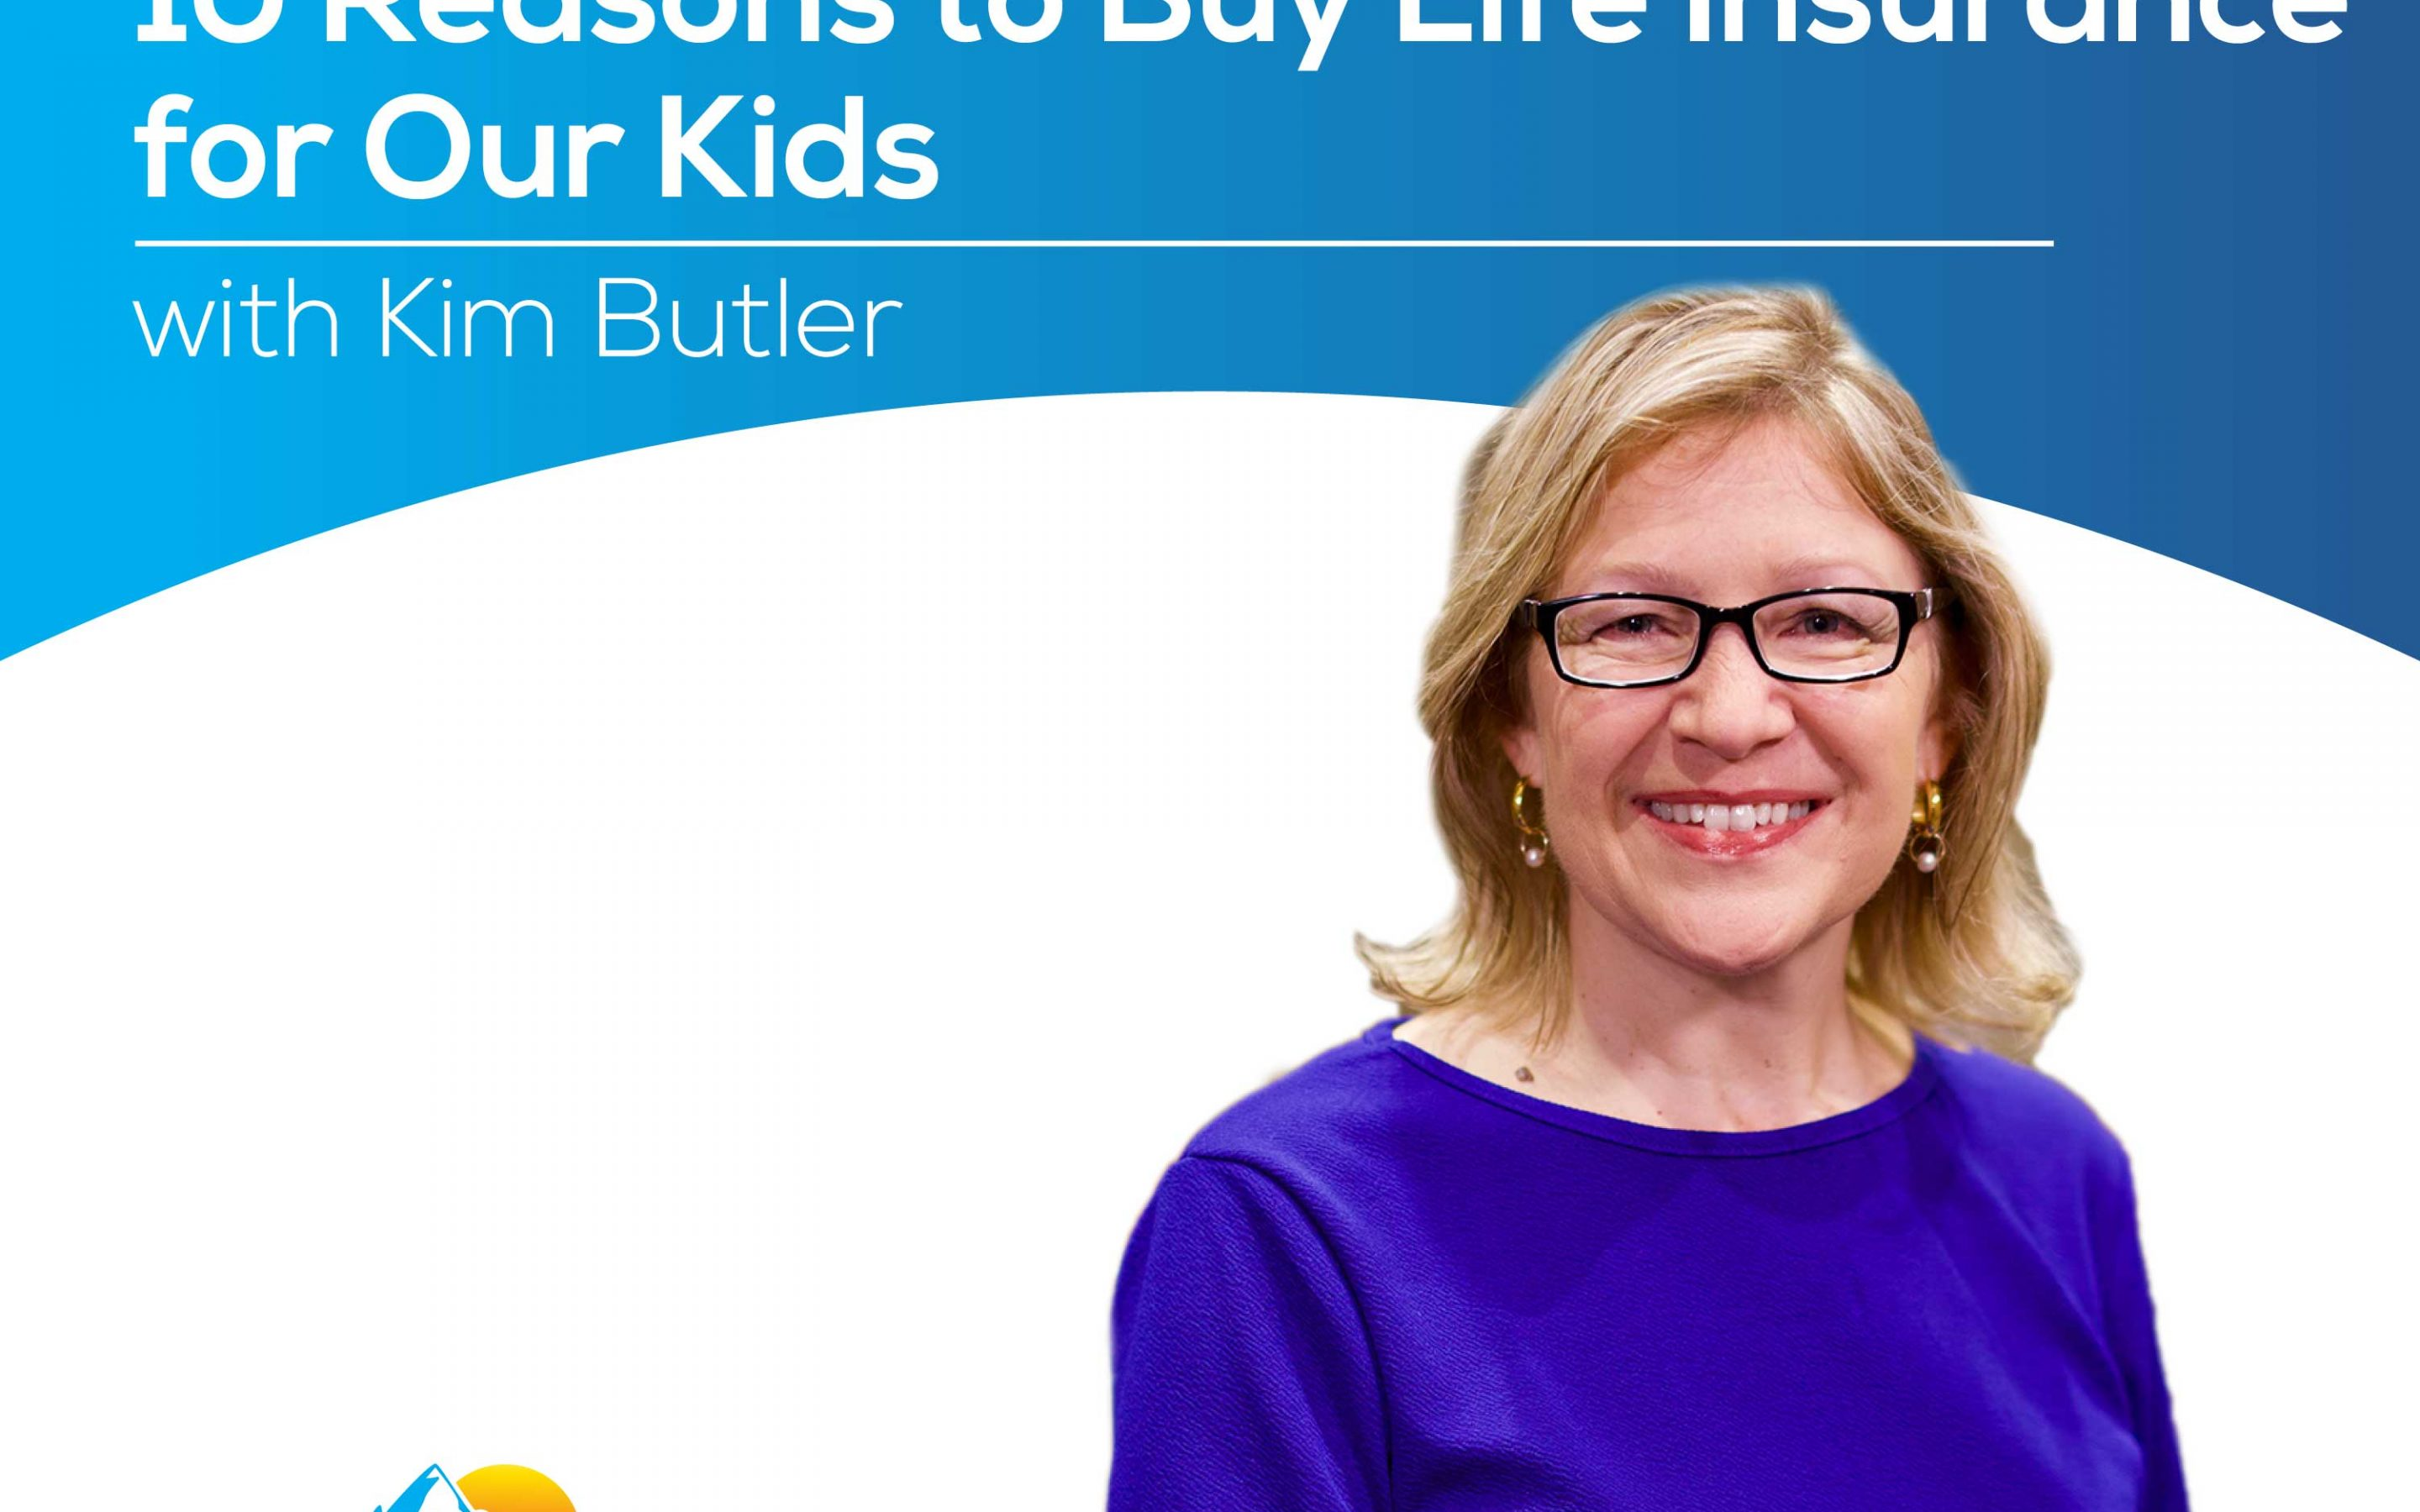 10 Reasons to Buy Life Insurance for Our Kids with Kim Butler – Episode 182